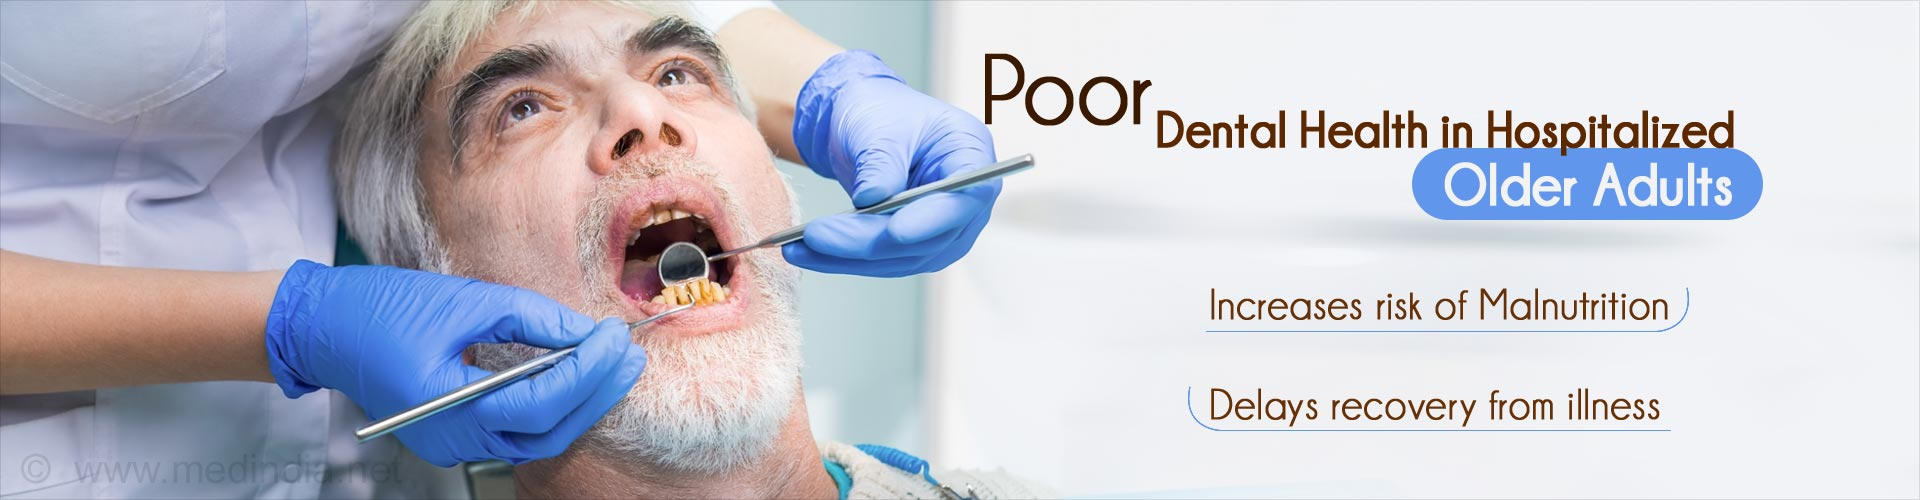 Poor Dental Health, Poverty Contribute to Malnutrition in Hospitalized Older Adults